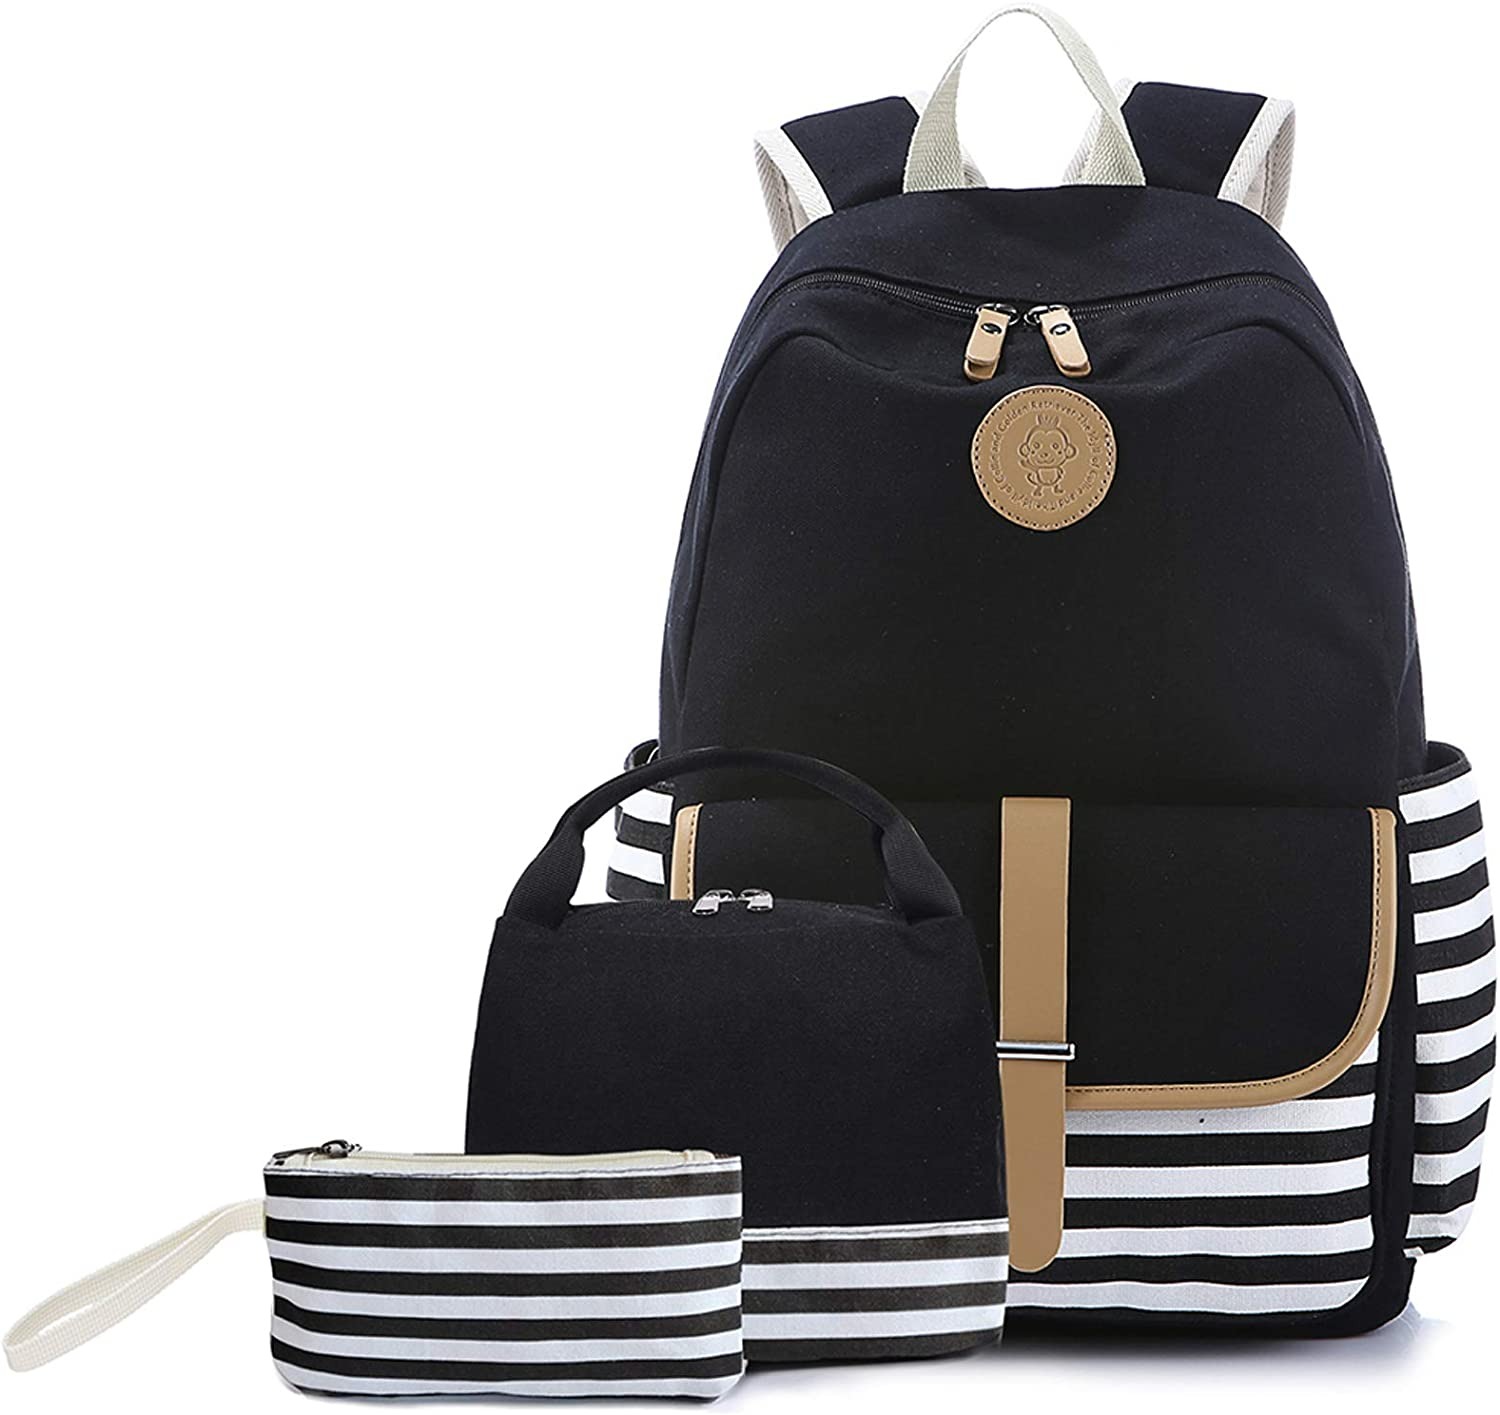 Sqodok Backpack for Women College, Girls Bookbag with Lunch Bag and Pencil Case